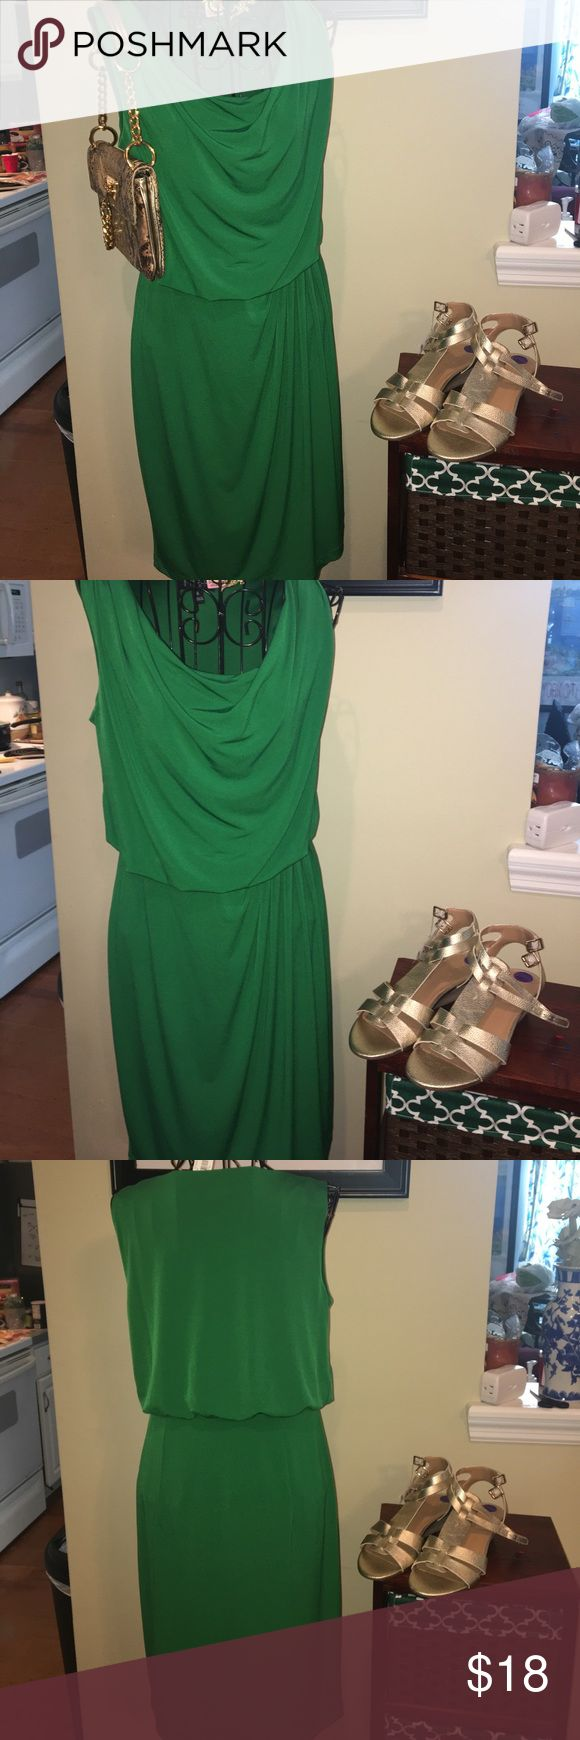 🌹Enfocus Studio Sleeveless Kelly Green dress Sleeveless blouson Kelly green dress with scoop neckline. Gathered at the waist on the left side. Polyester spandex. This dress can be easily dressed up or down and worn year round with sandals or a sweater layered underneath with boots. Enfocus Studio Dresses